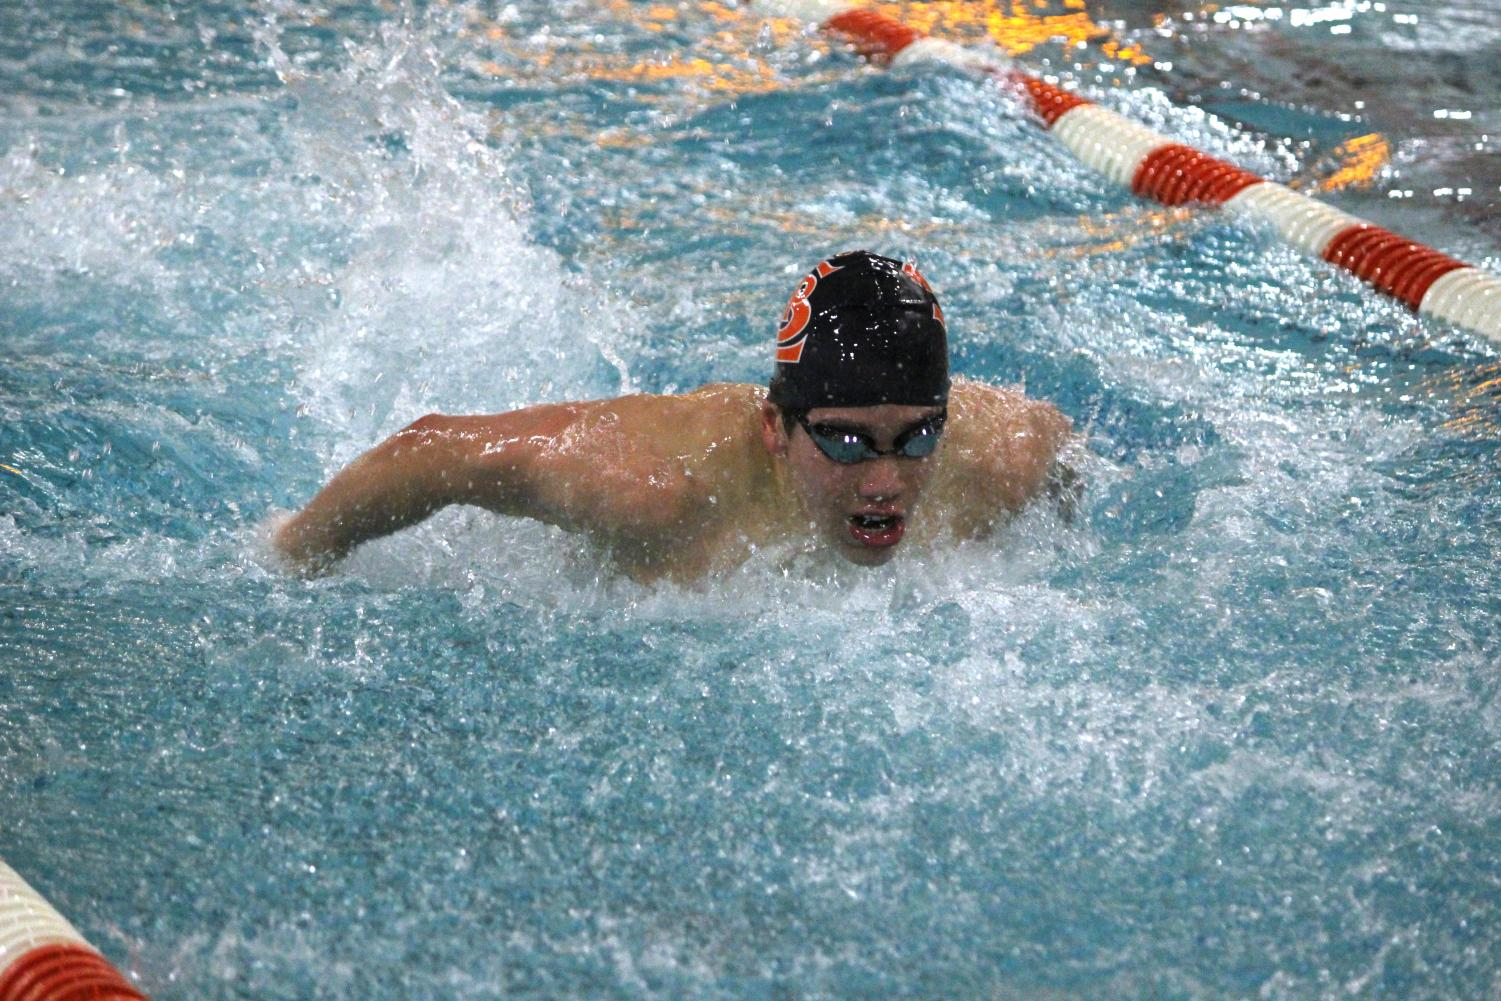 Freshman Hayden Zheng competes in his race during senior night, the final home meet of the season against Benilde on Feb. 2. Hayden broke the 100 backstroke pool record previously held by Chaska-Chan with a time of 00:53.85.